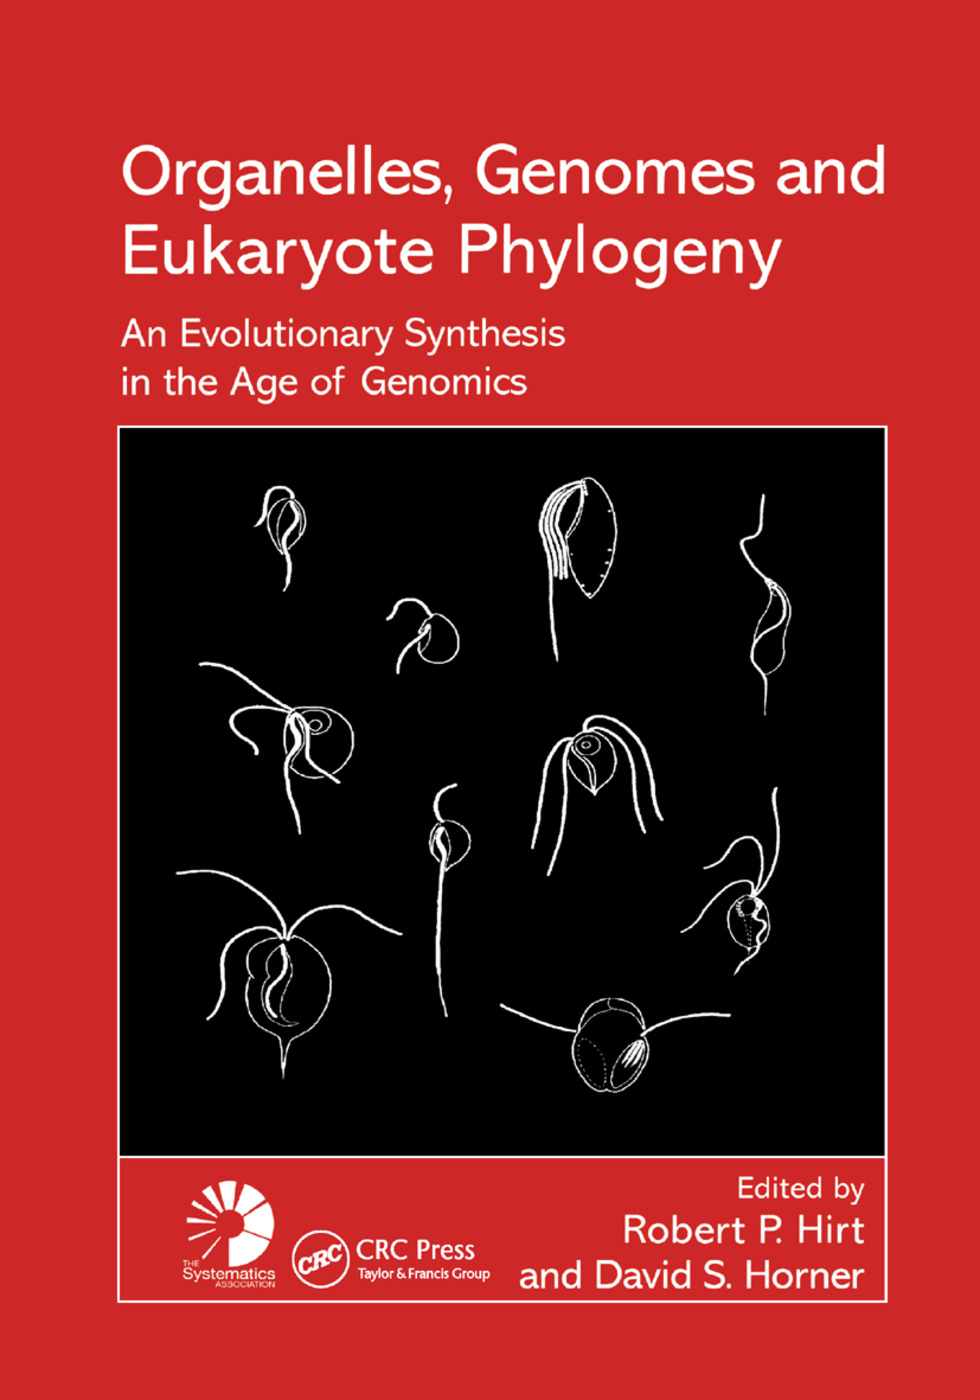 Organelles, Genomes and Eukaryote Phylogeny: An Evolutionary Synthesis in the Age of Genomics, 1st Edition (Paperback) book cover